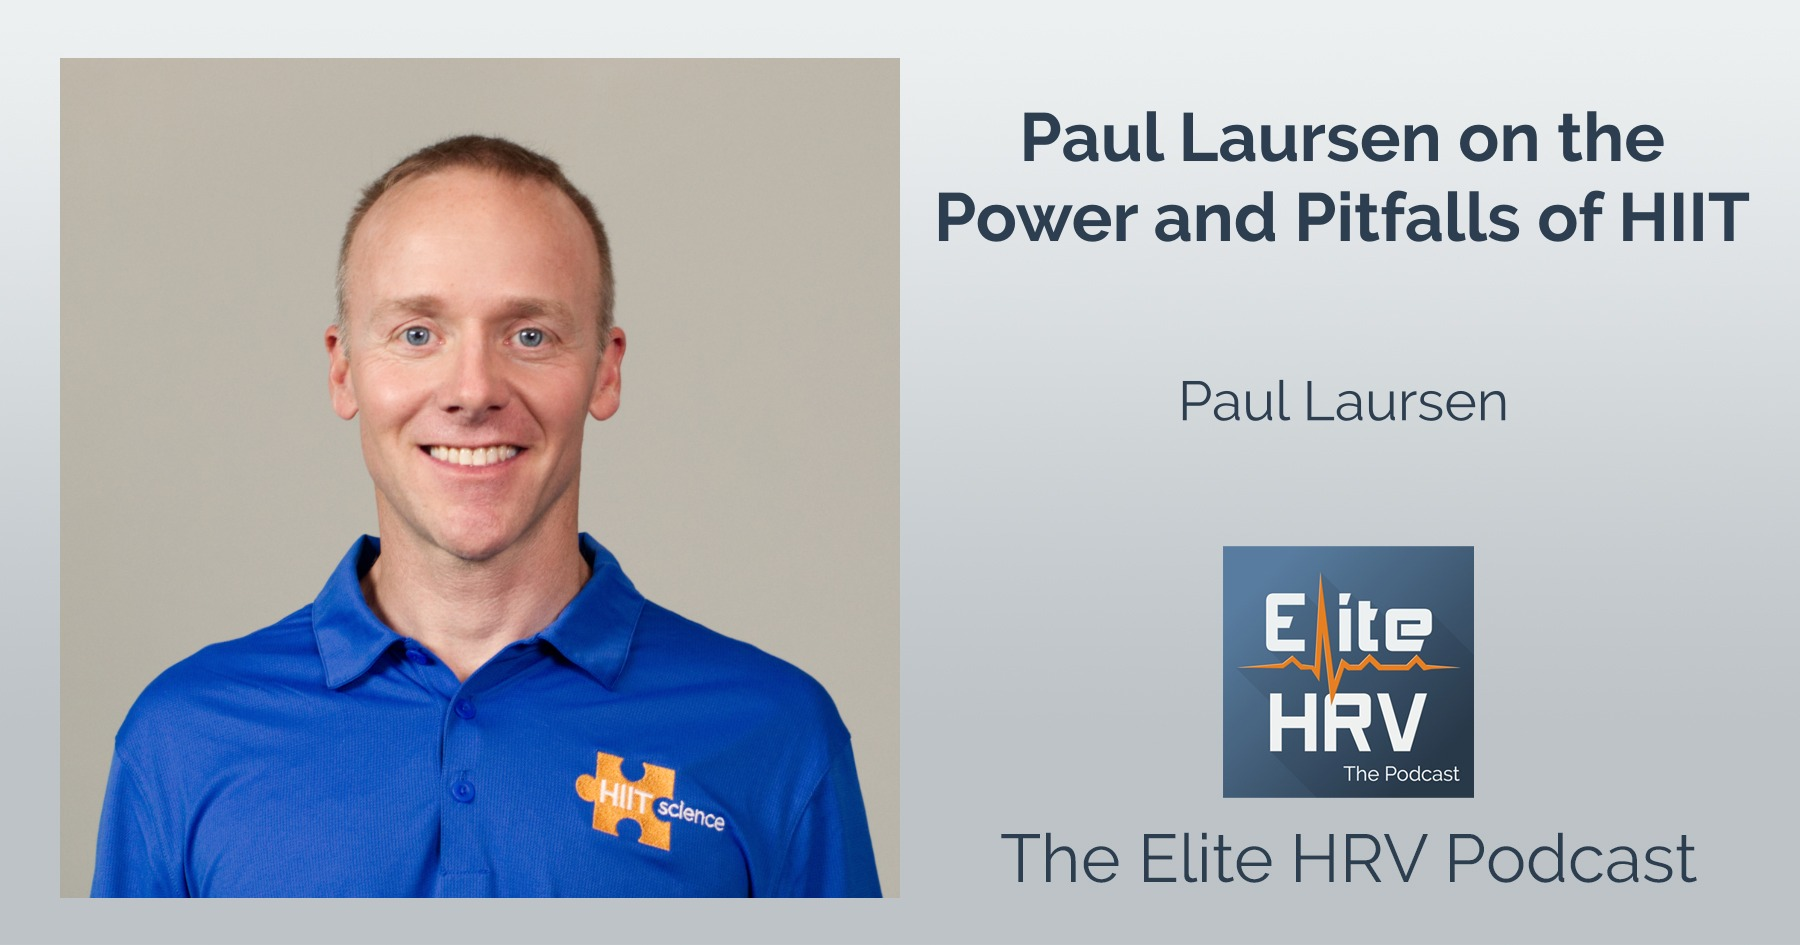 Paul Laursen on the Power and Pitfalls of HIIT